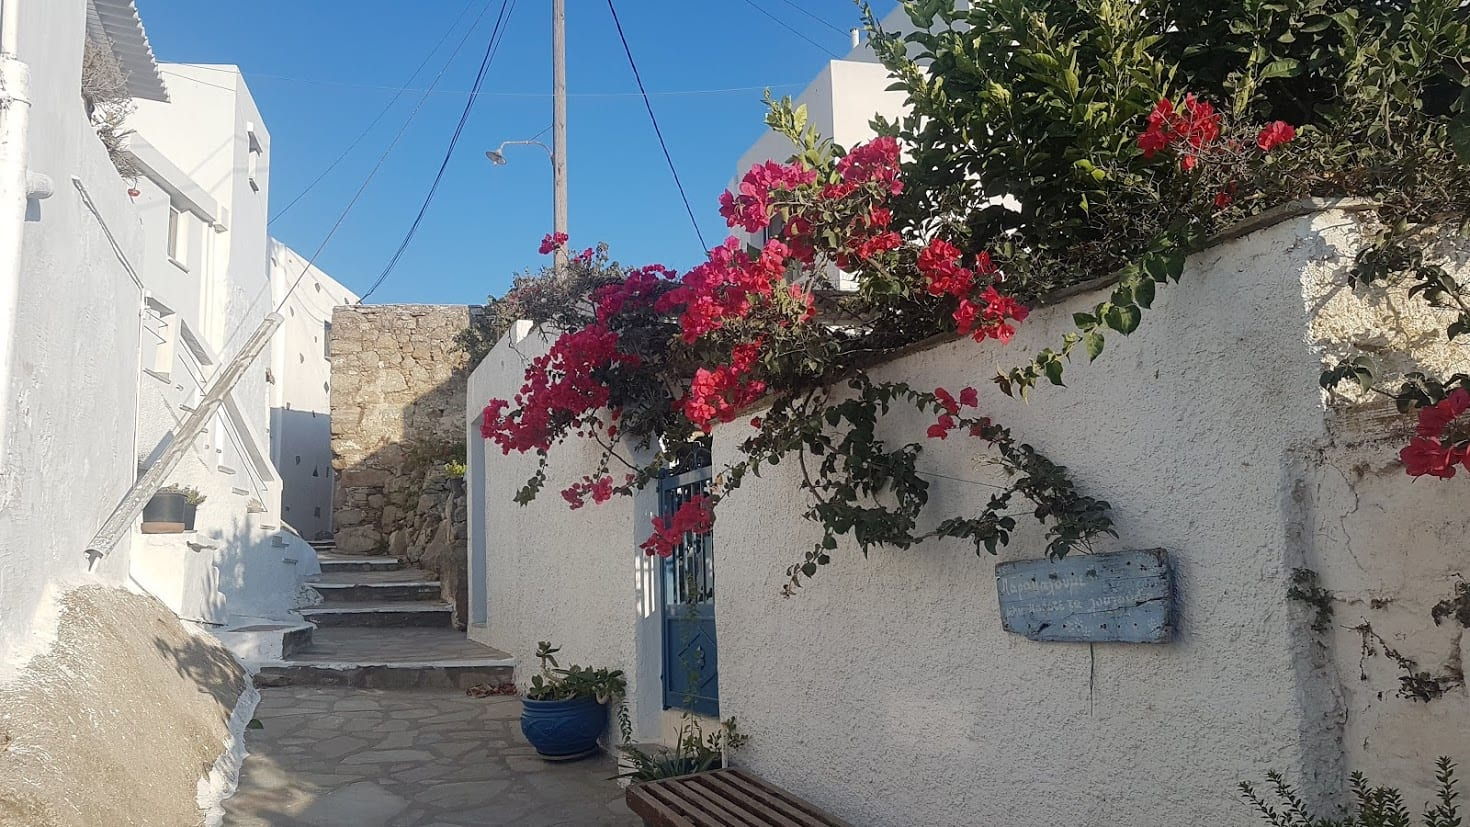 Walking through the quiet streets of Tinos